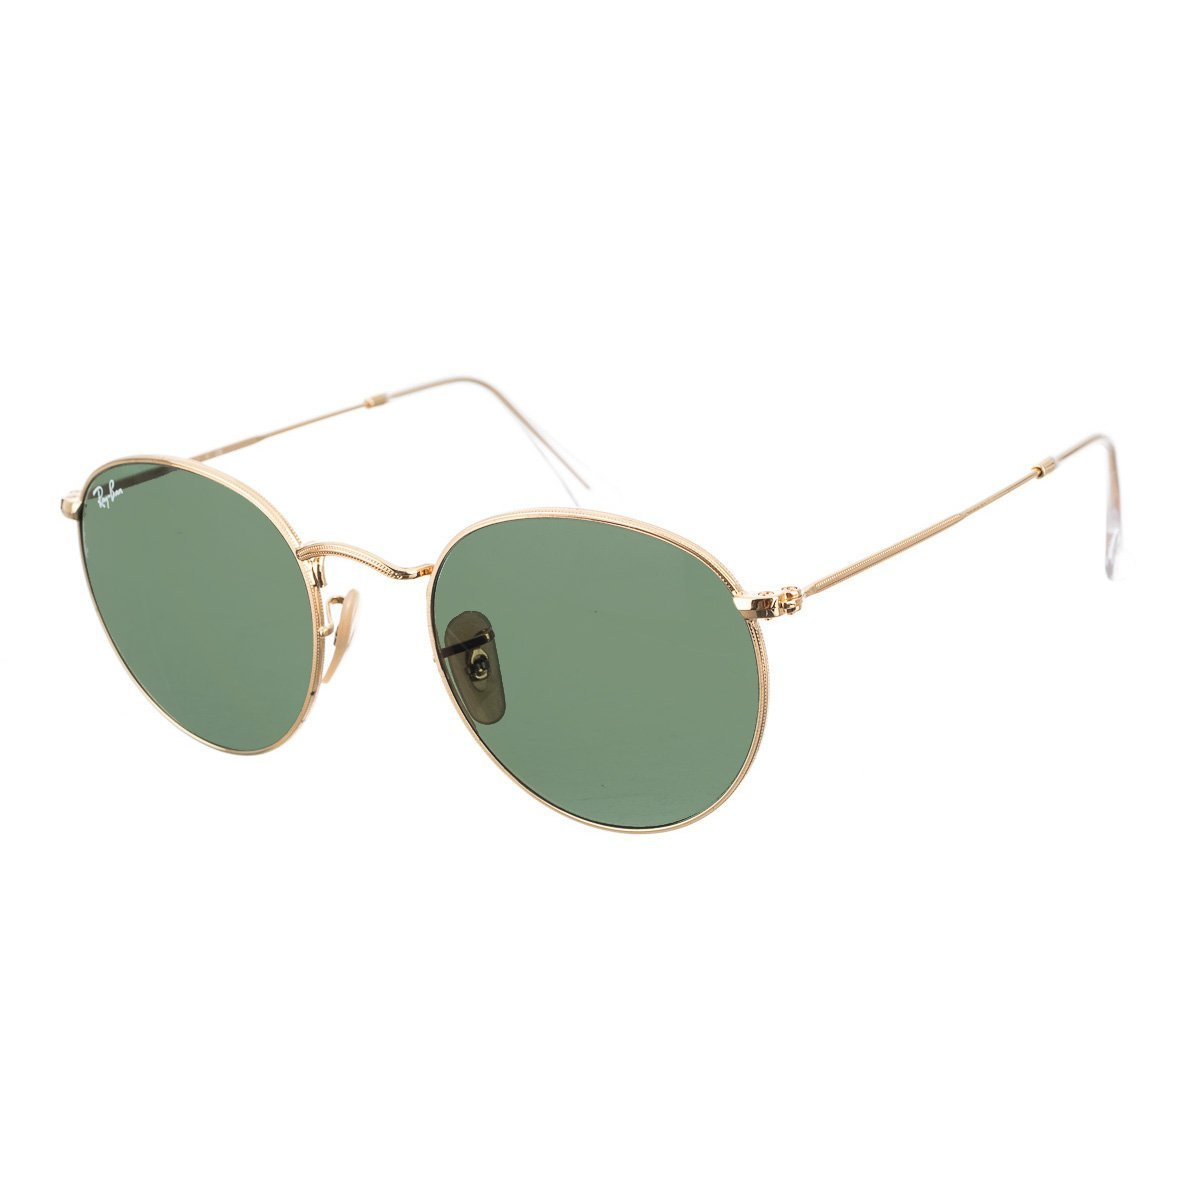 Buy Polarized Round Ray Bans Now!